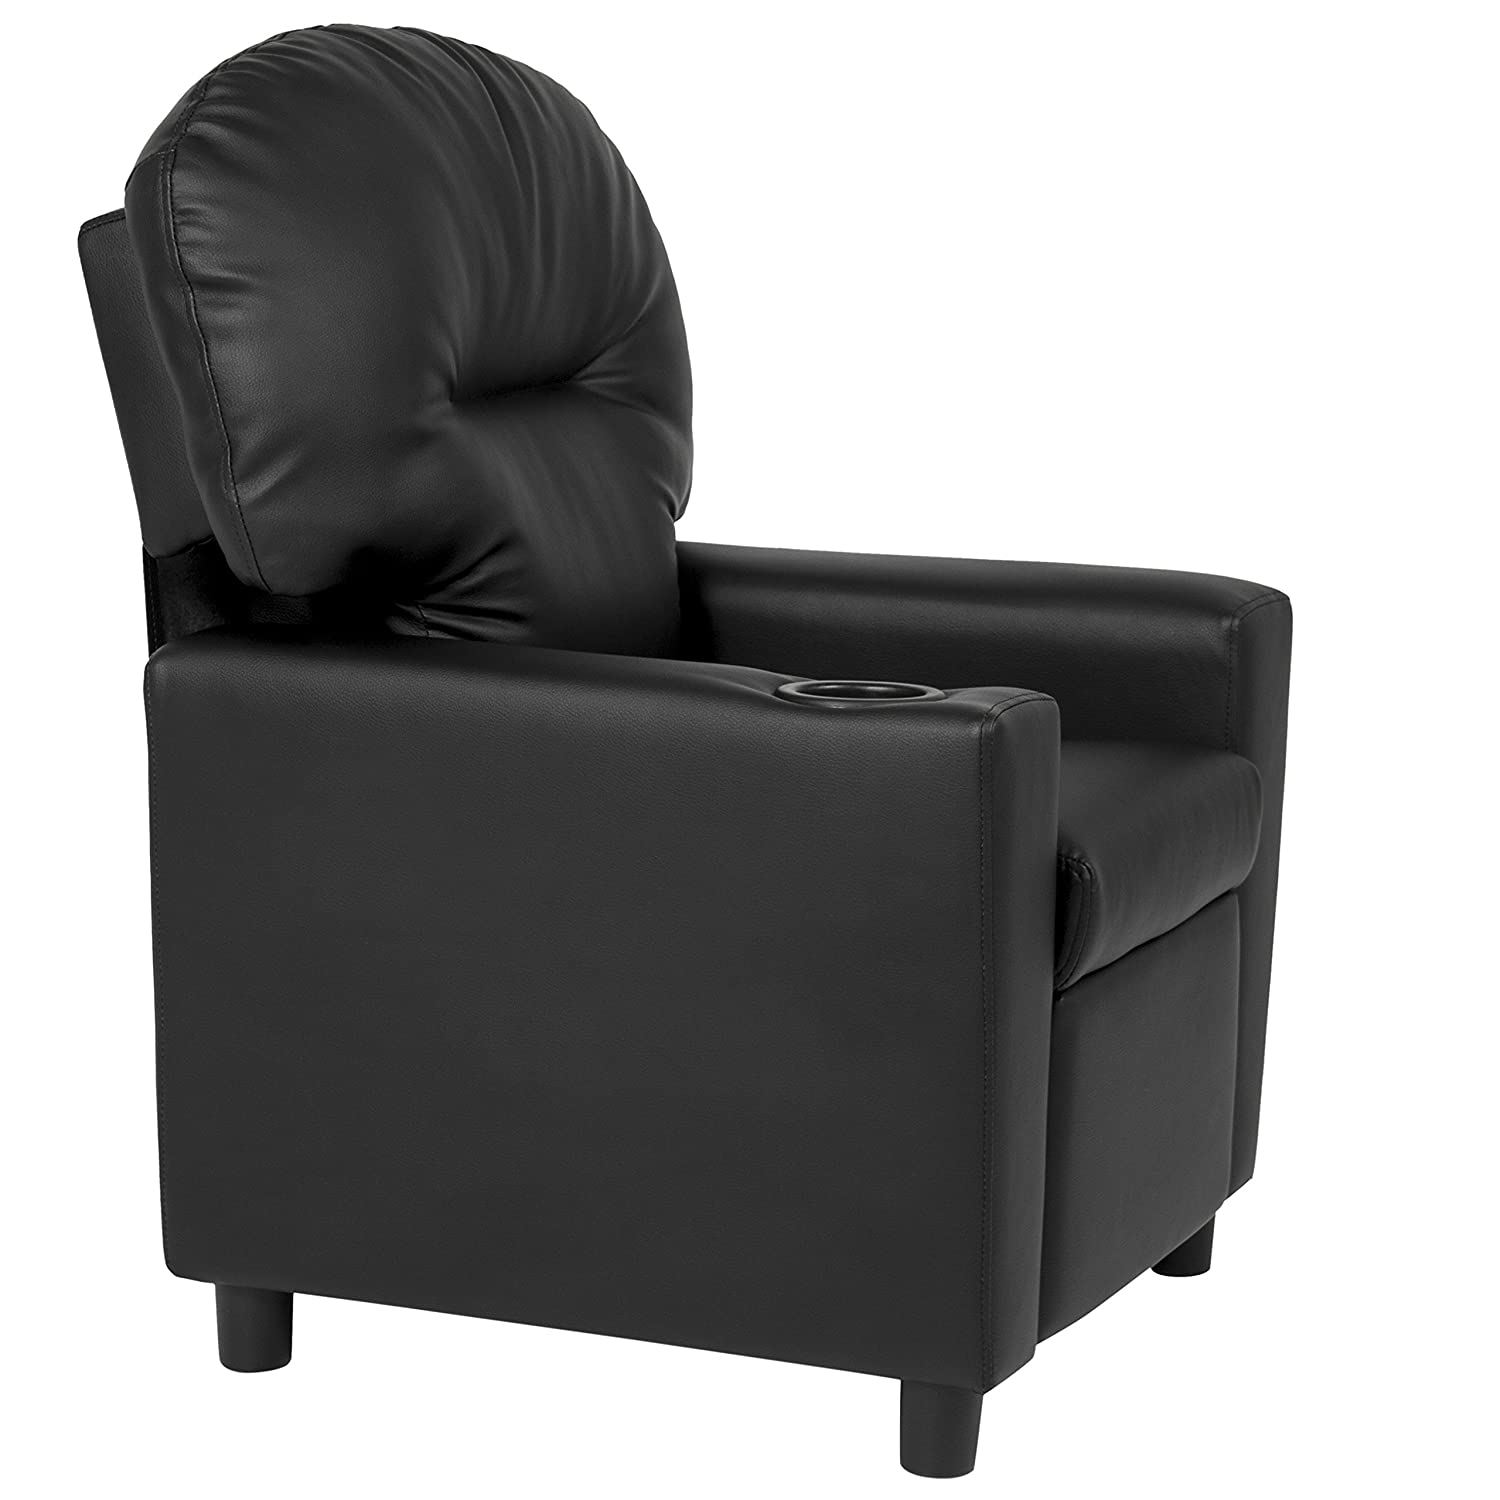 Amazon.com BCP Contemporary Black Leather Kids Recliner Chair with Cup Holder Home \u0026 Kitchen  sc 1 st  Amazon.com & Amazon.com: BCP Contemporary Black Leather Kids Recliner Chair ... islam-shia.org